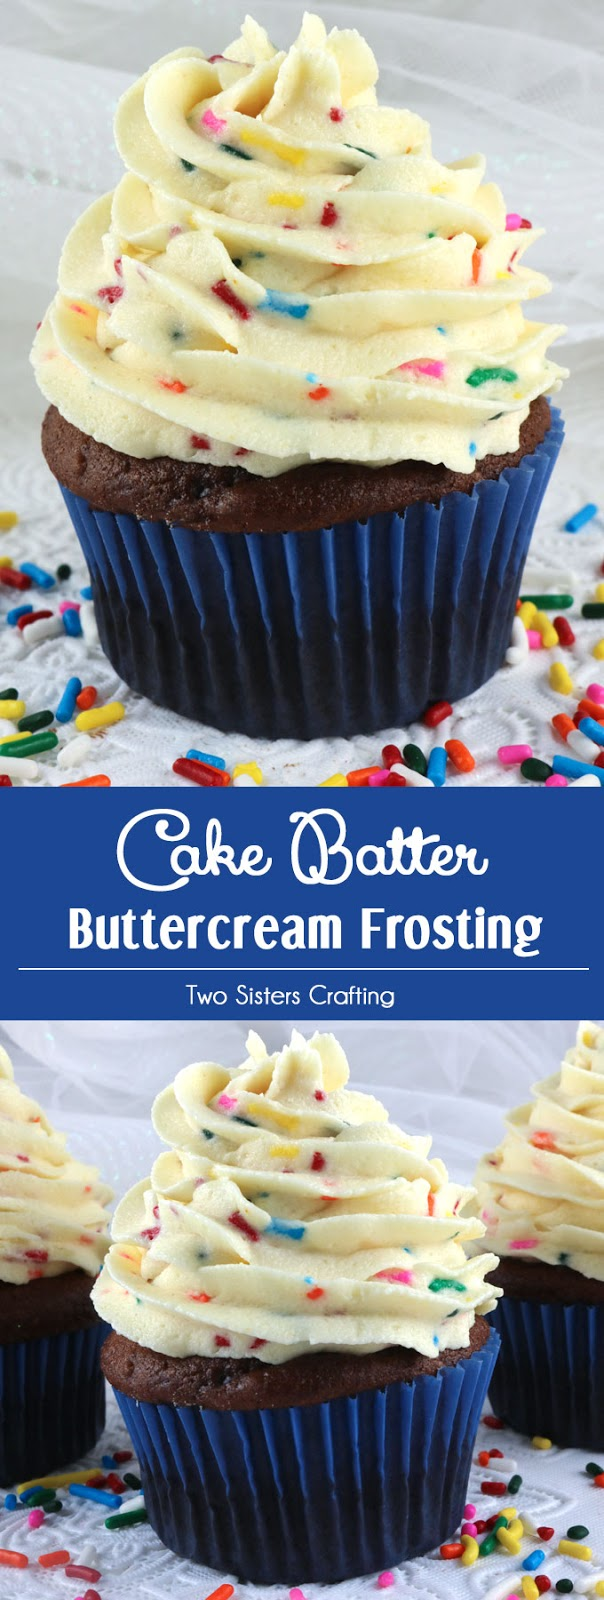 Cake Batter Buttercream Frosting